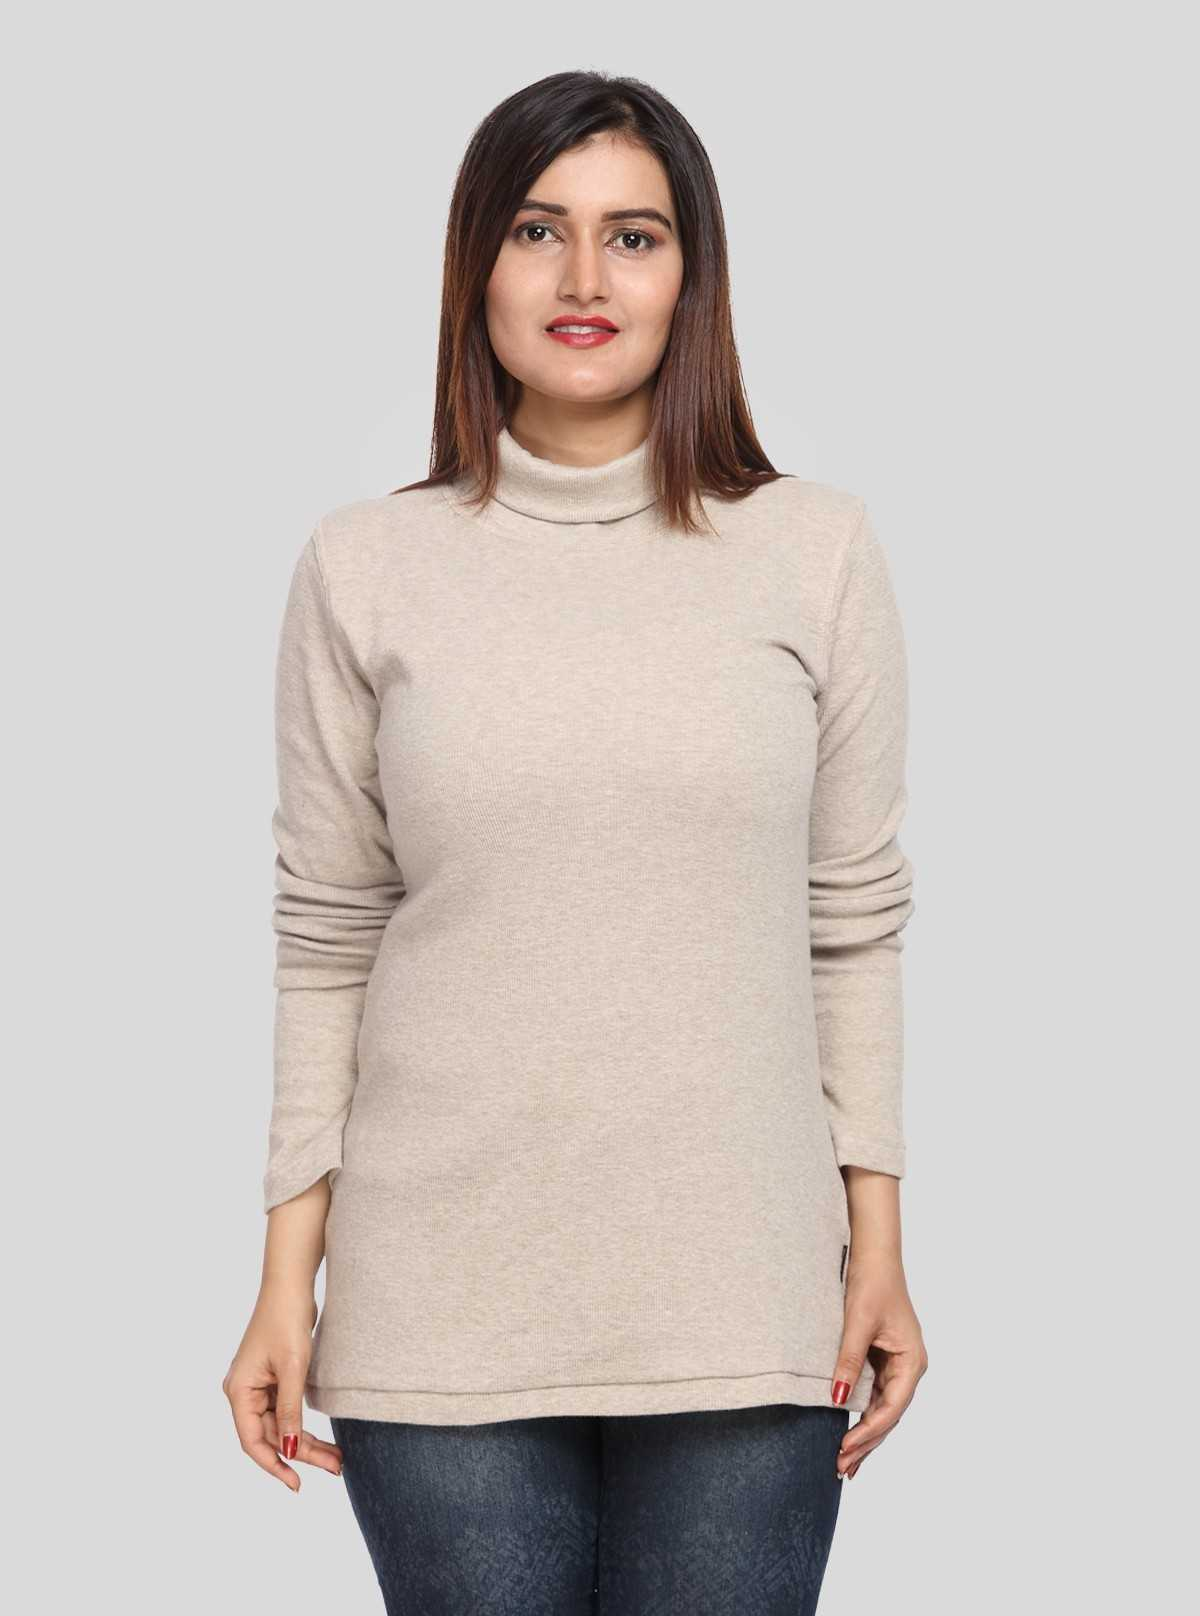 Beige Turtle Neck Top Boer and Fitch - 2